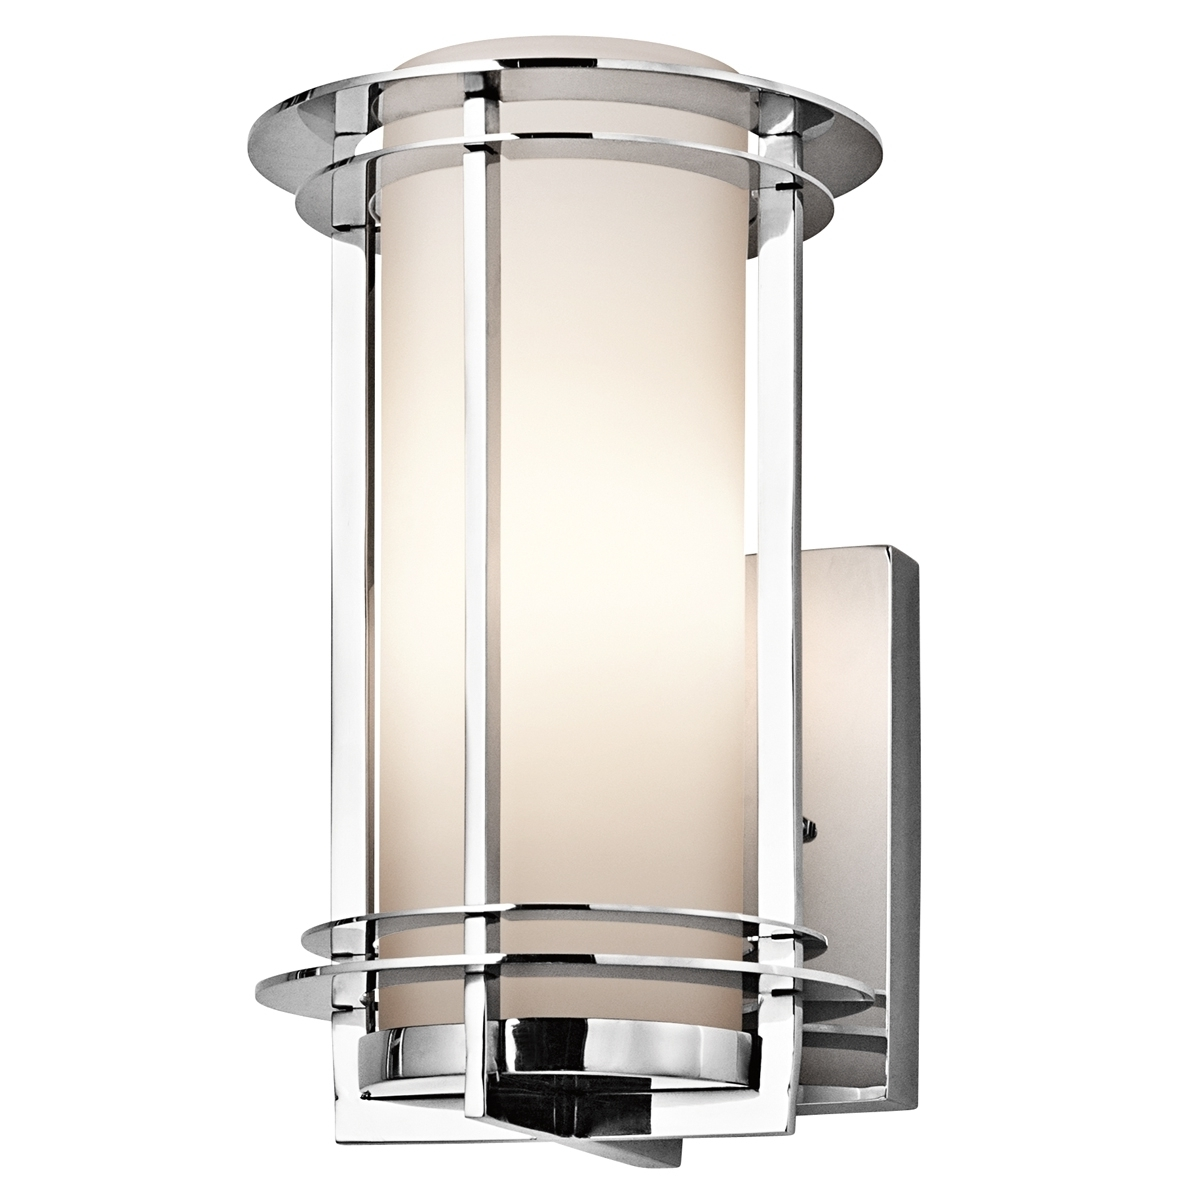 Kichler Outdoor Lighting Wall Sconce • Wall Sconces Inside Most Recently Released Chrome Outdoor Wall Lighting (Gallery 11 of 20)